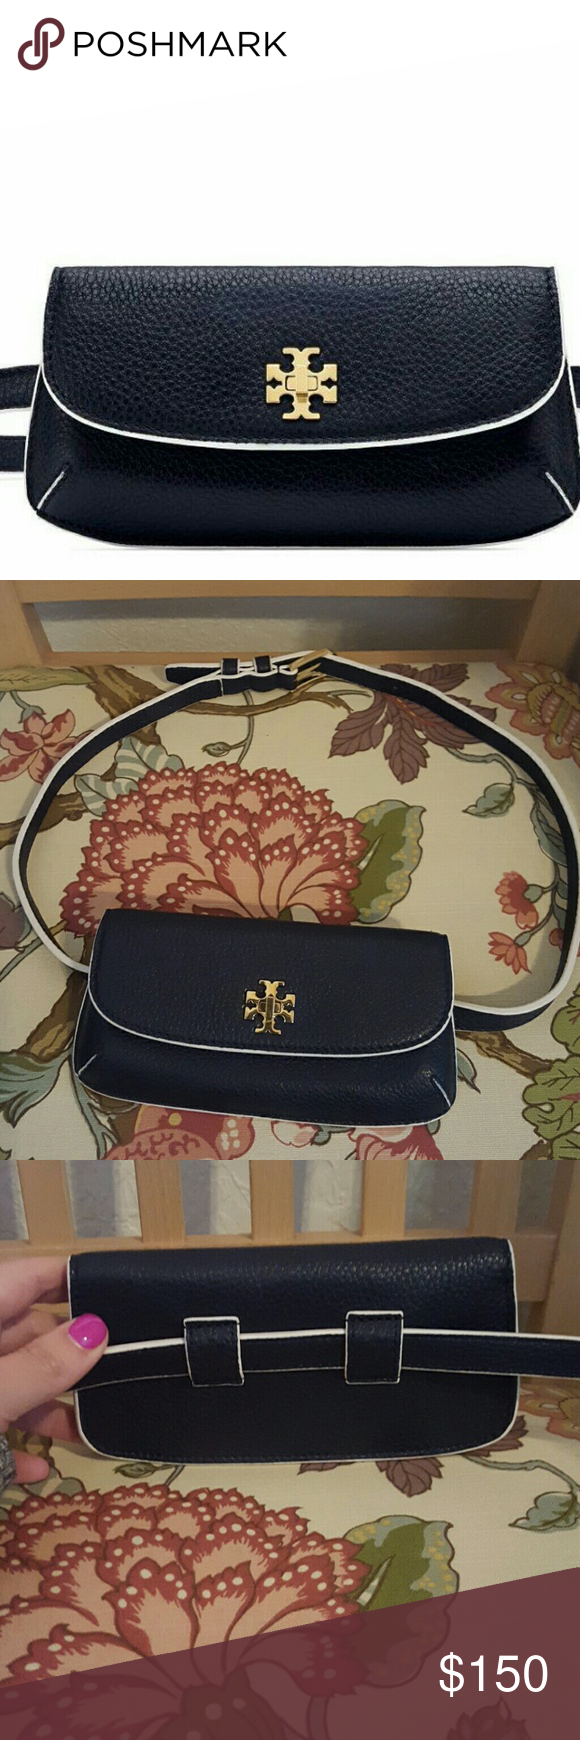 97e489c76f64 NWOT Tory Burch Diana Belt Bag Tory Burch Diana Belt Bag in navy blue  leather with